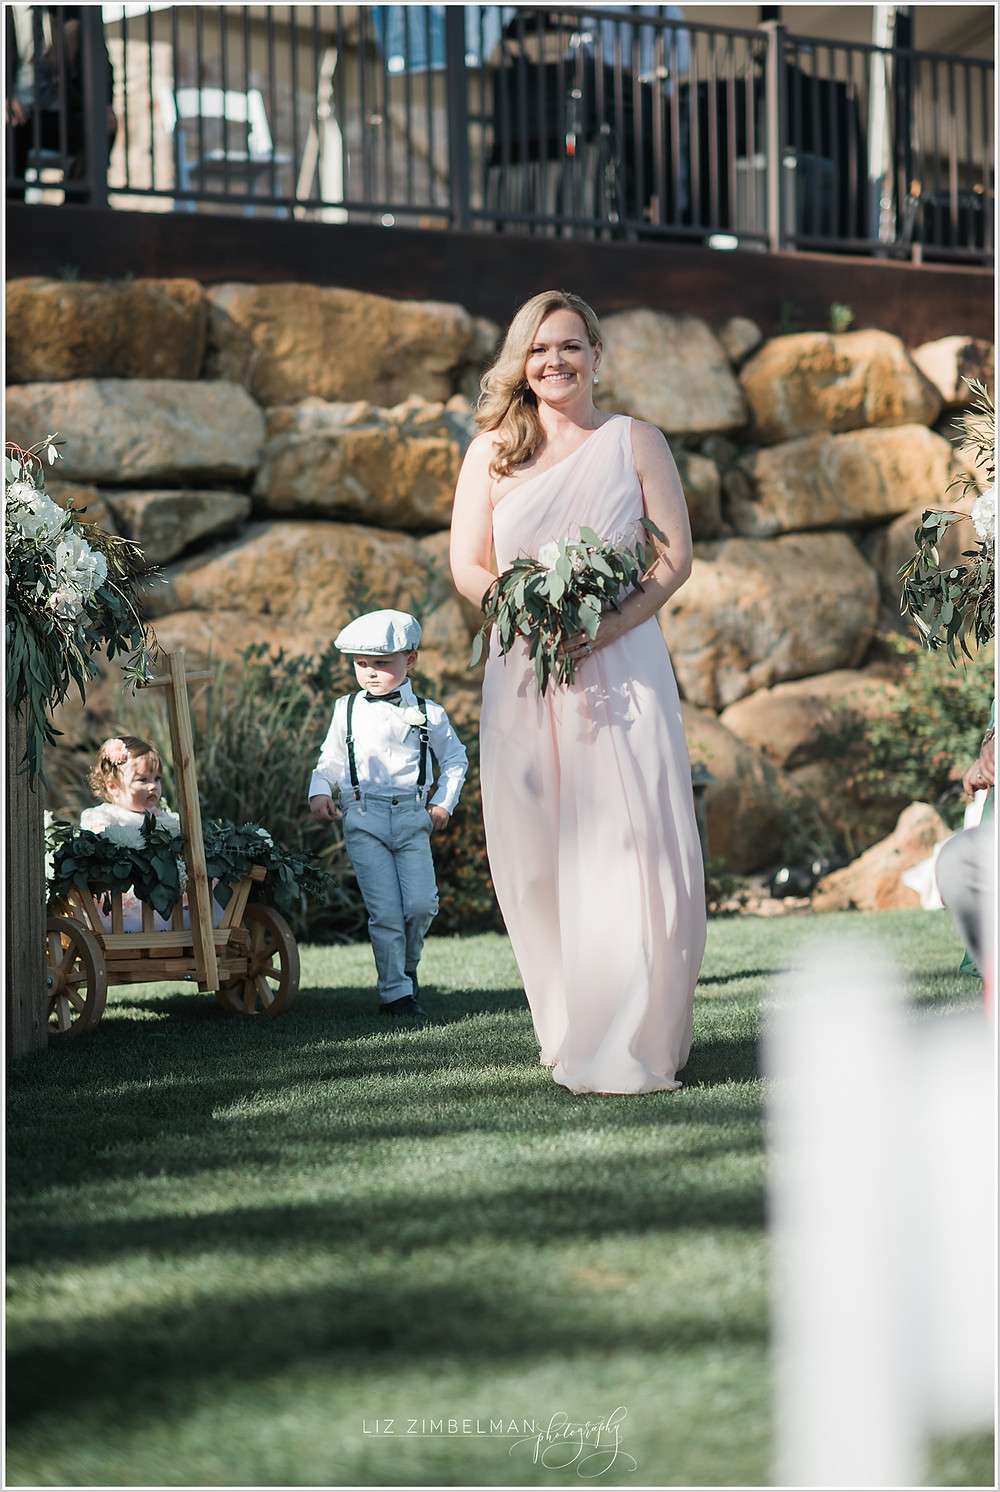 Bridesmaid walking down aisle